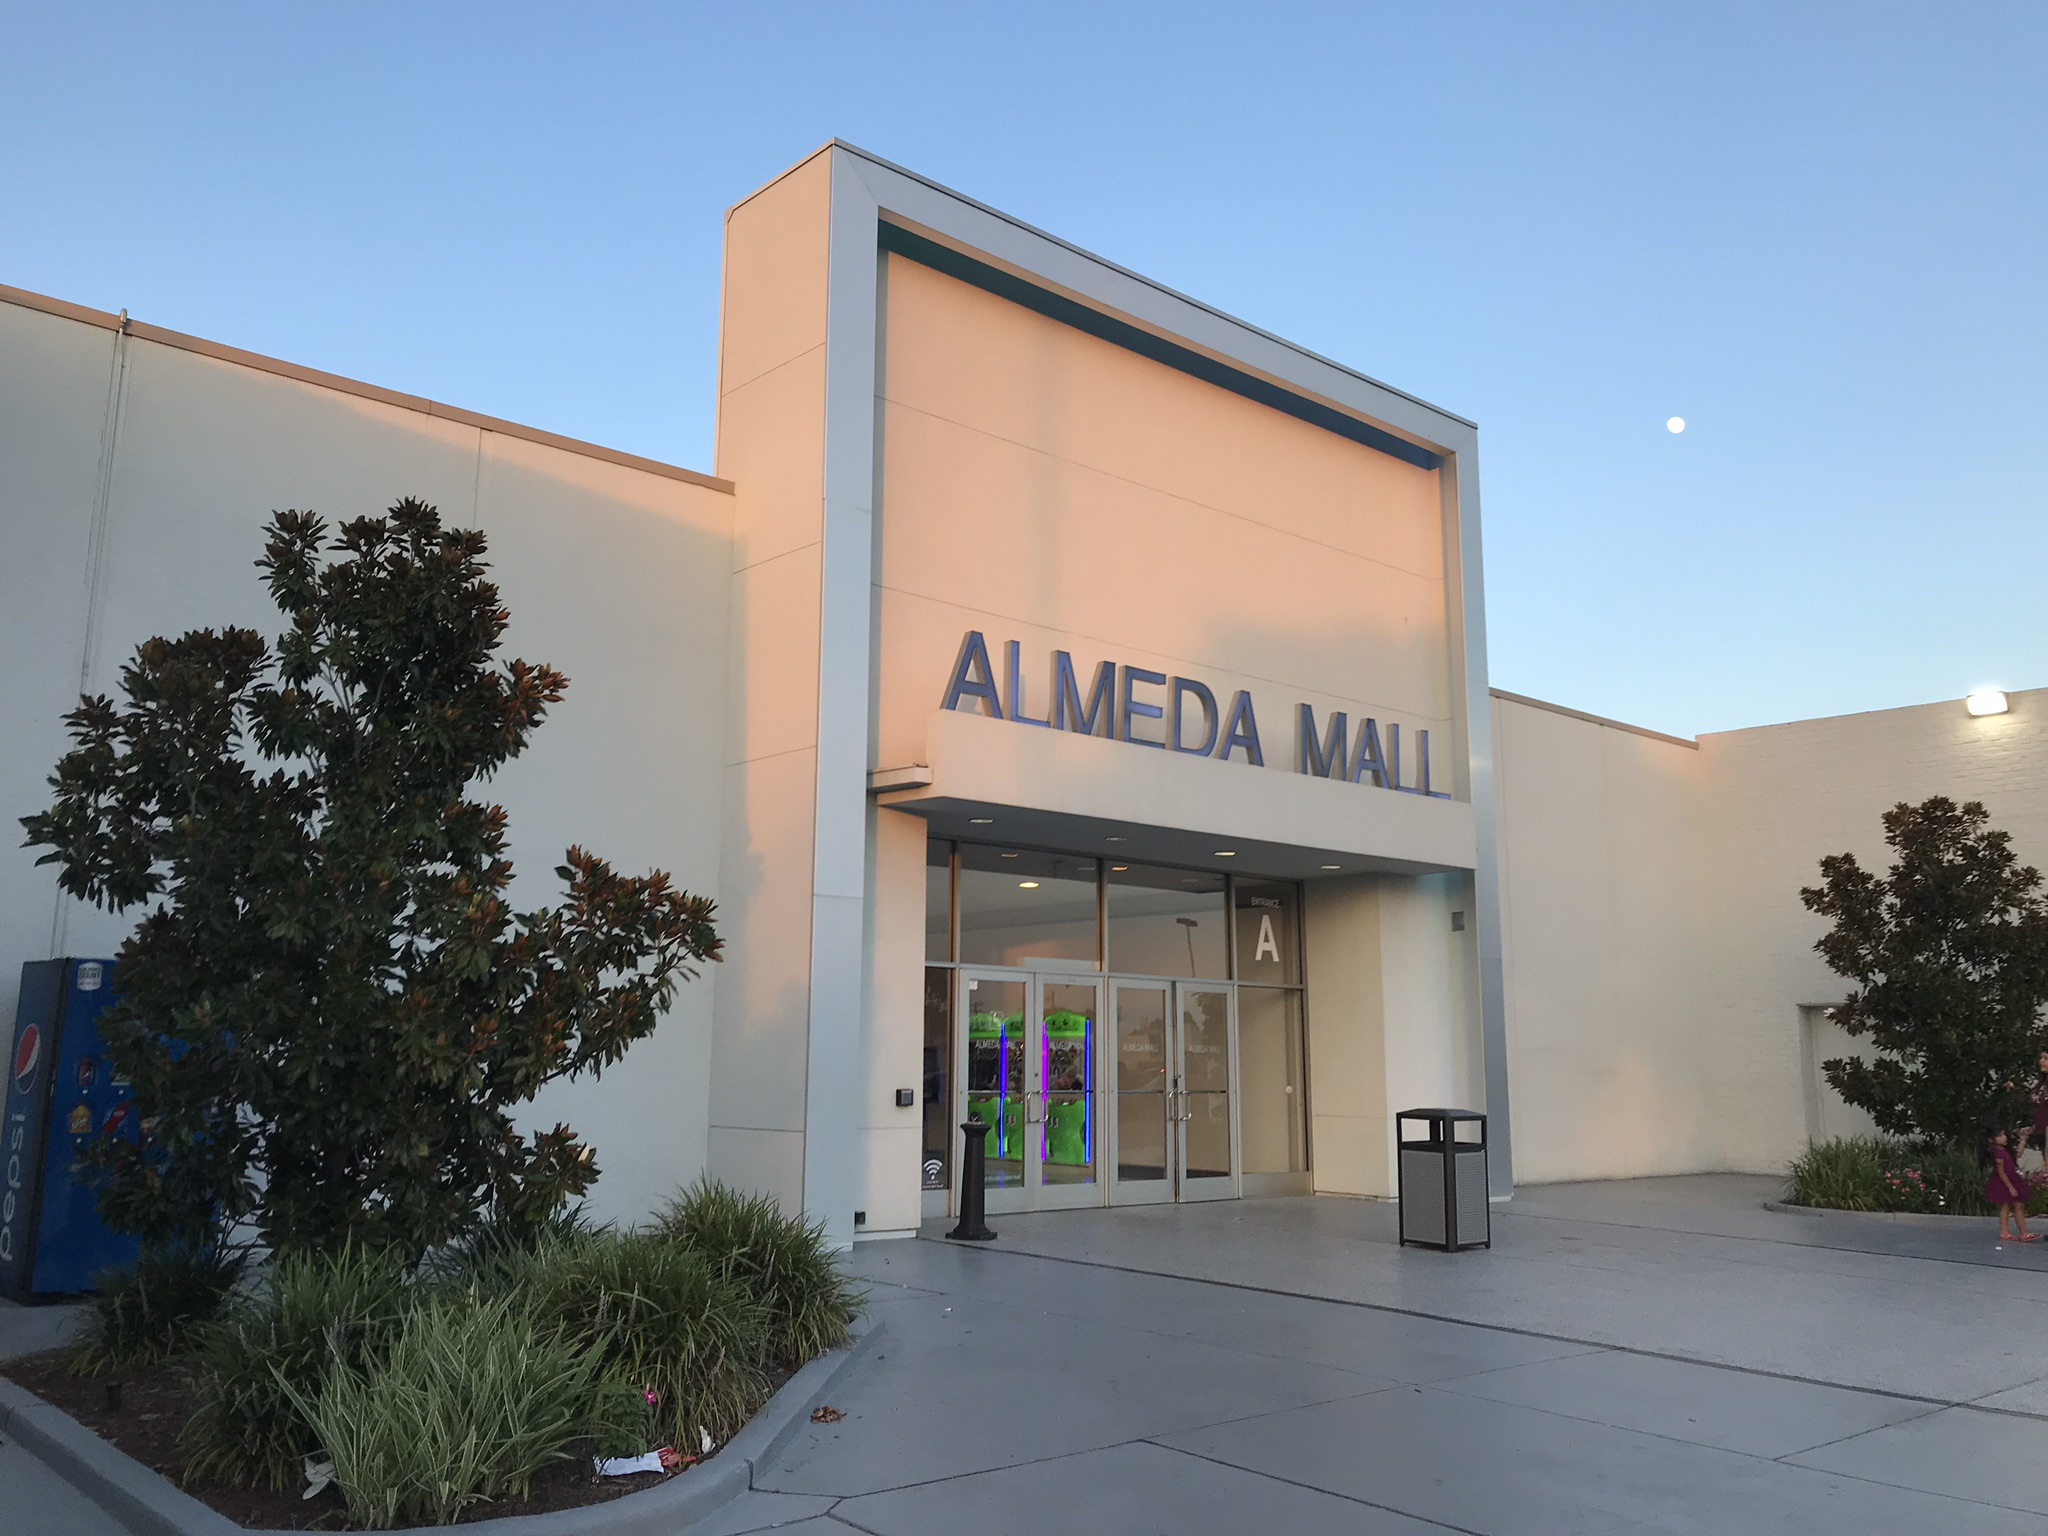 Visiting Almeda Mall for the first time